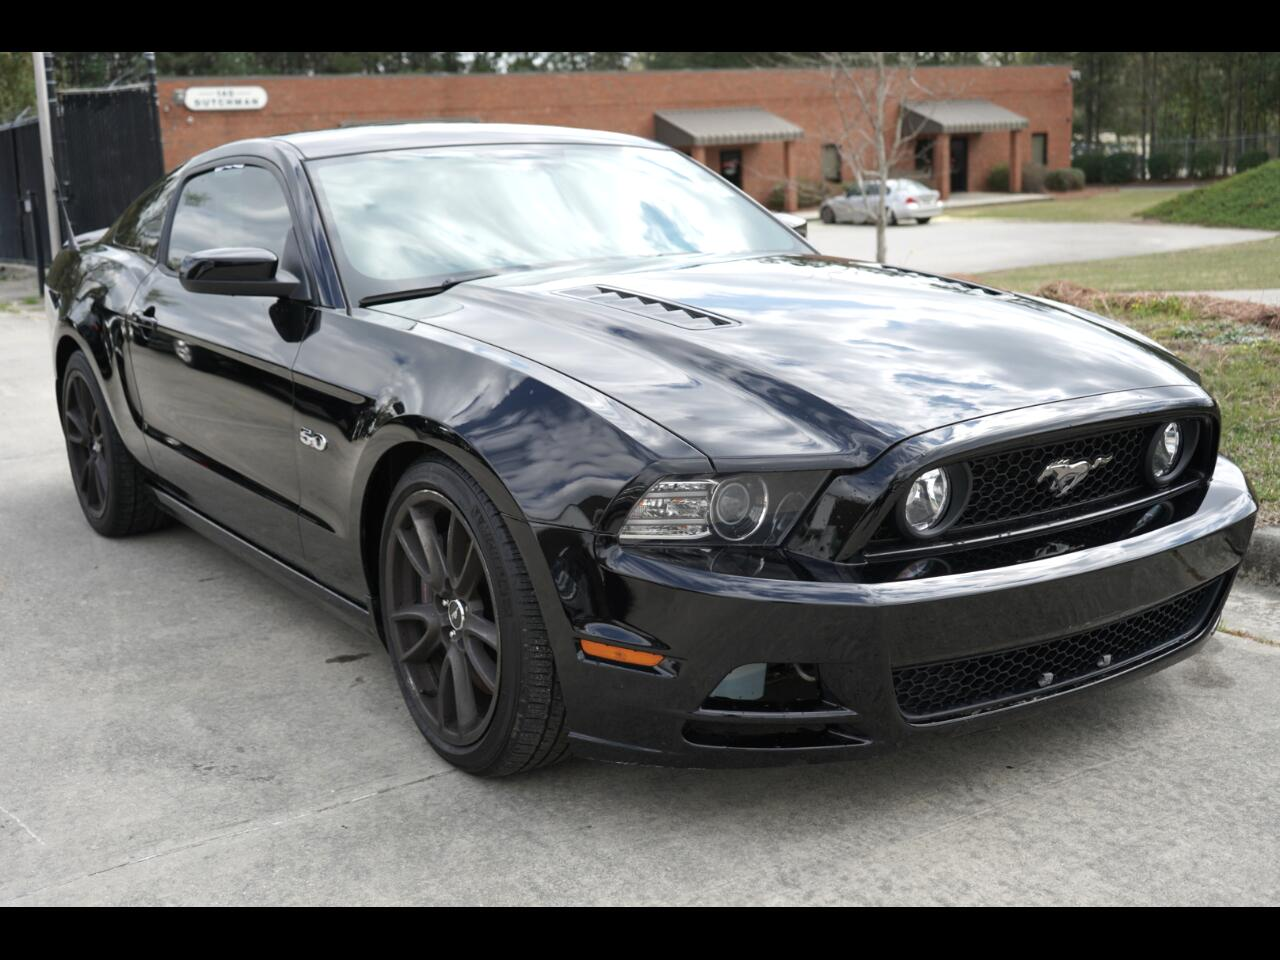 2014 Ford Mustang GT 5.0 Coupe